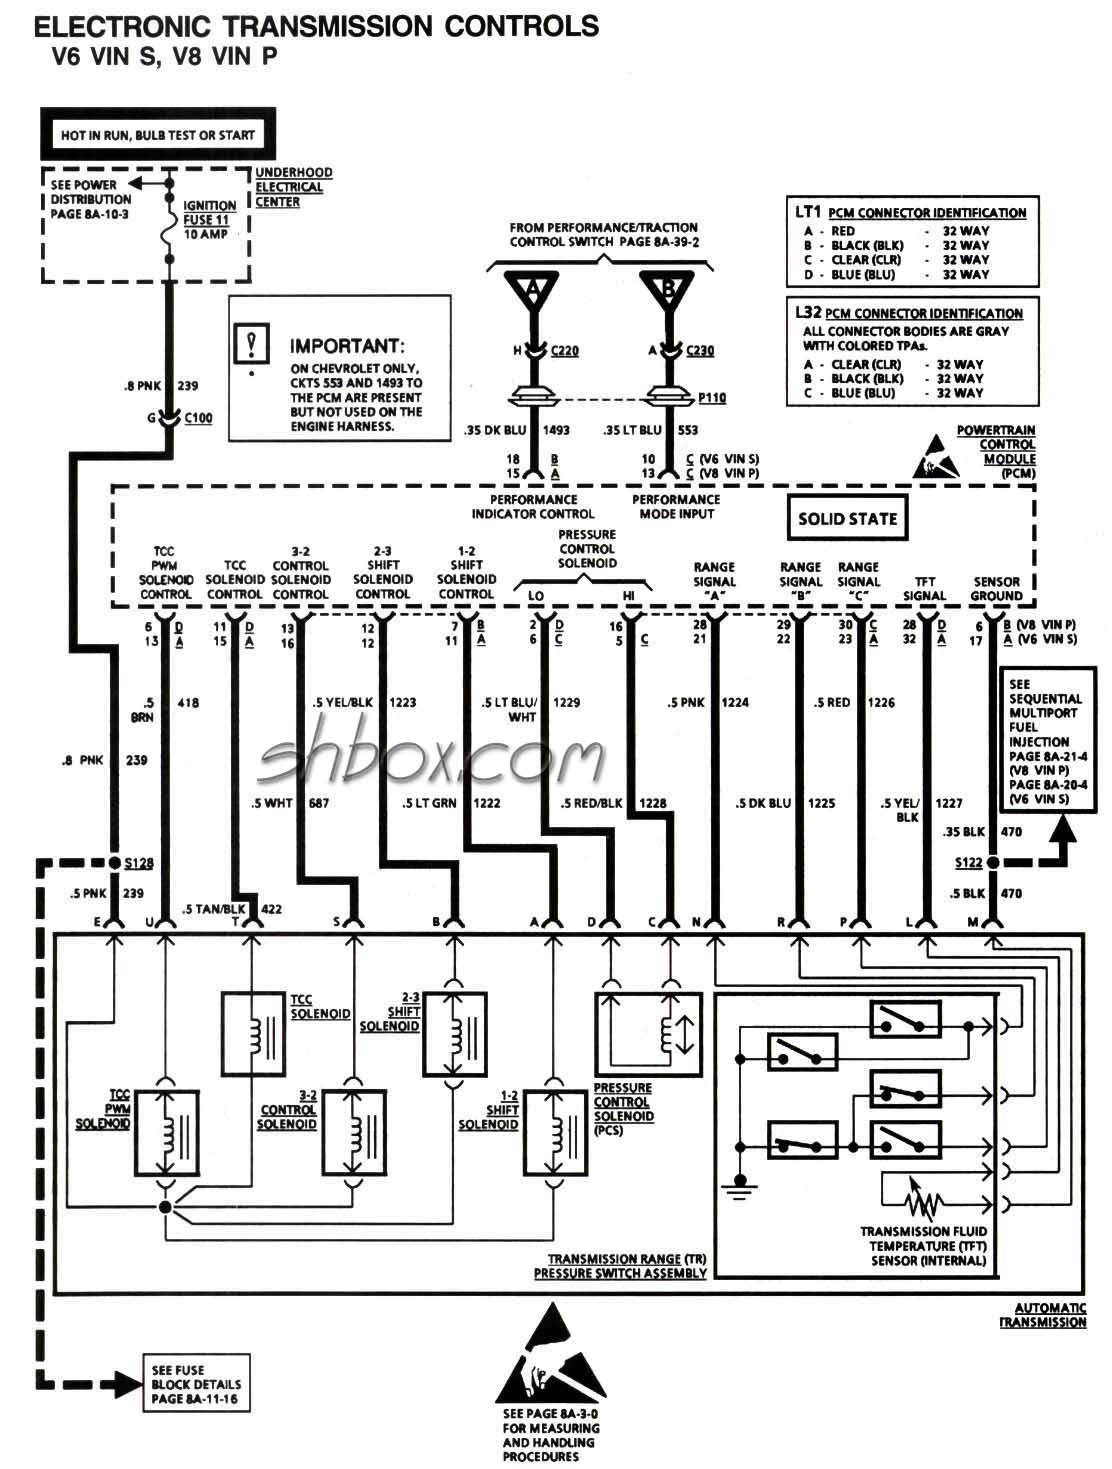 4l60e prndl wiring - Hot Rod Forum : Hotrodders Bulletin Board on 4l60e transmission valve body diagram, 2006 mazda 5 transmission shift solenoids diagram, 4l80e transmission wiring diagram, chevy 4l60e transmission diagram, 4l80 automatic transmission wiring diagram, 4l60e transmission shift valve breakdown diagram, 4l60e transmission tcc solenoid,